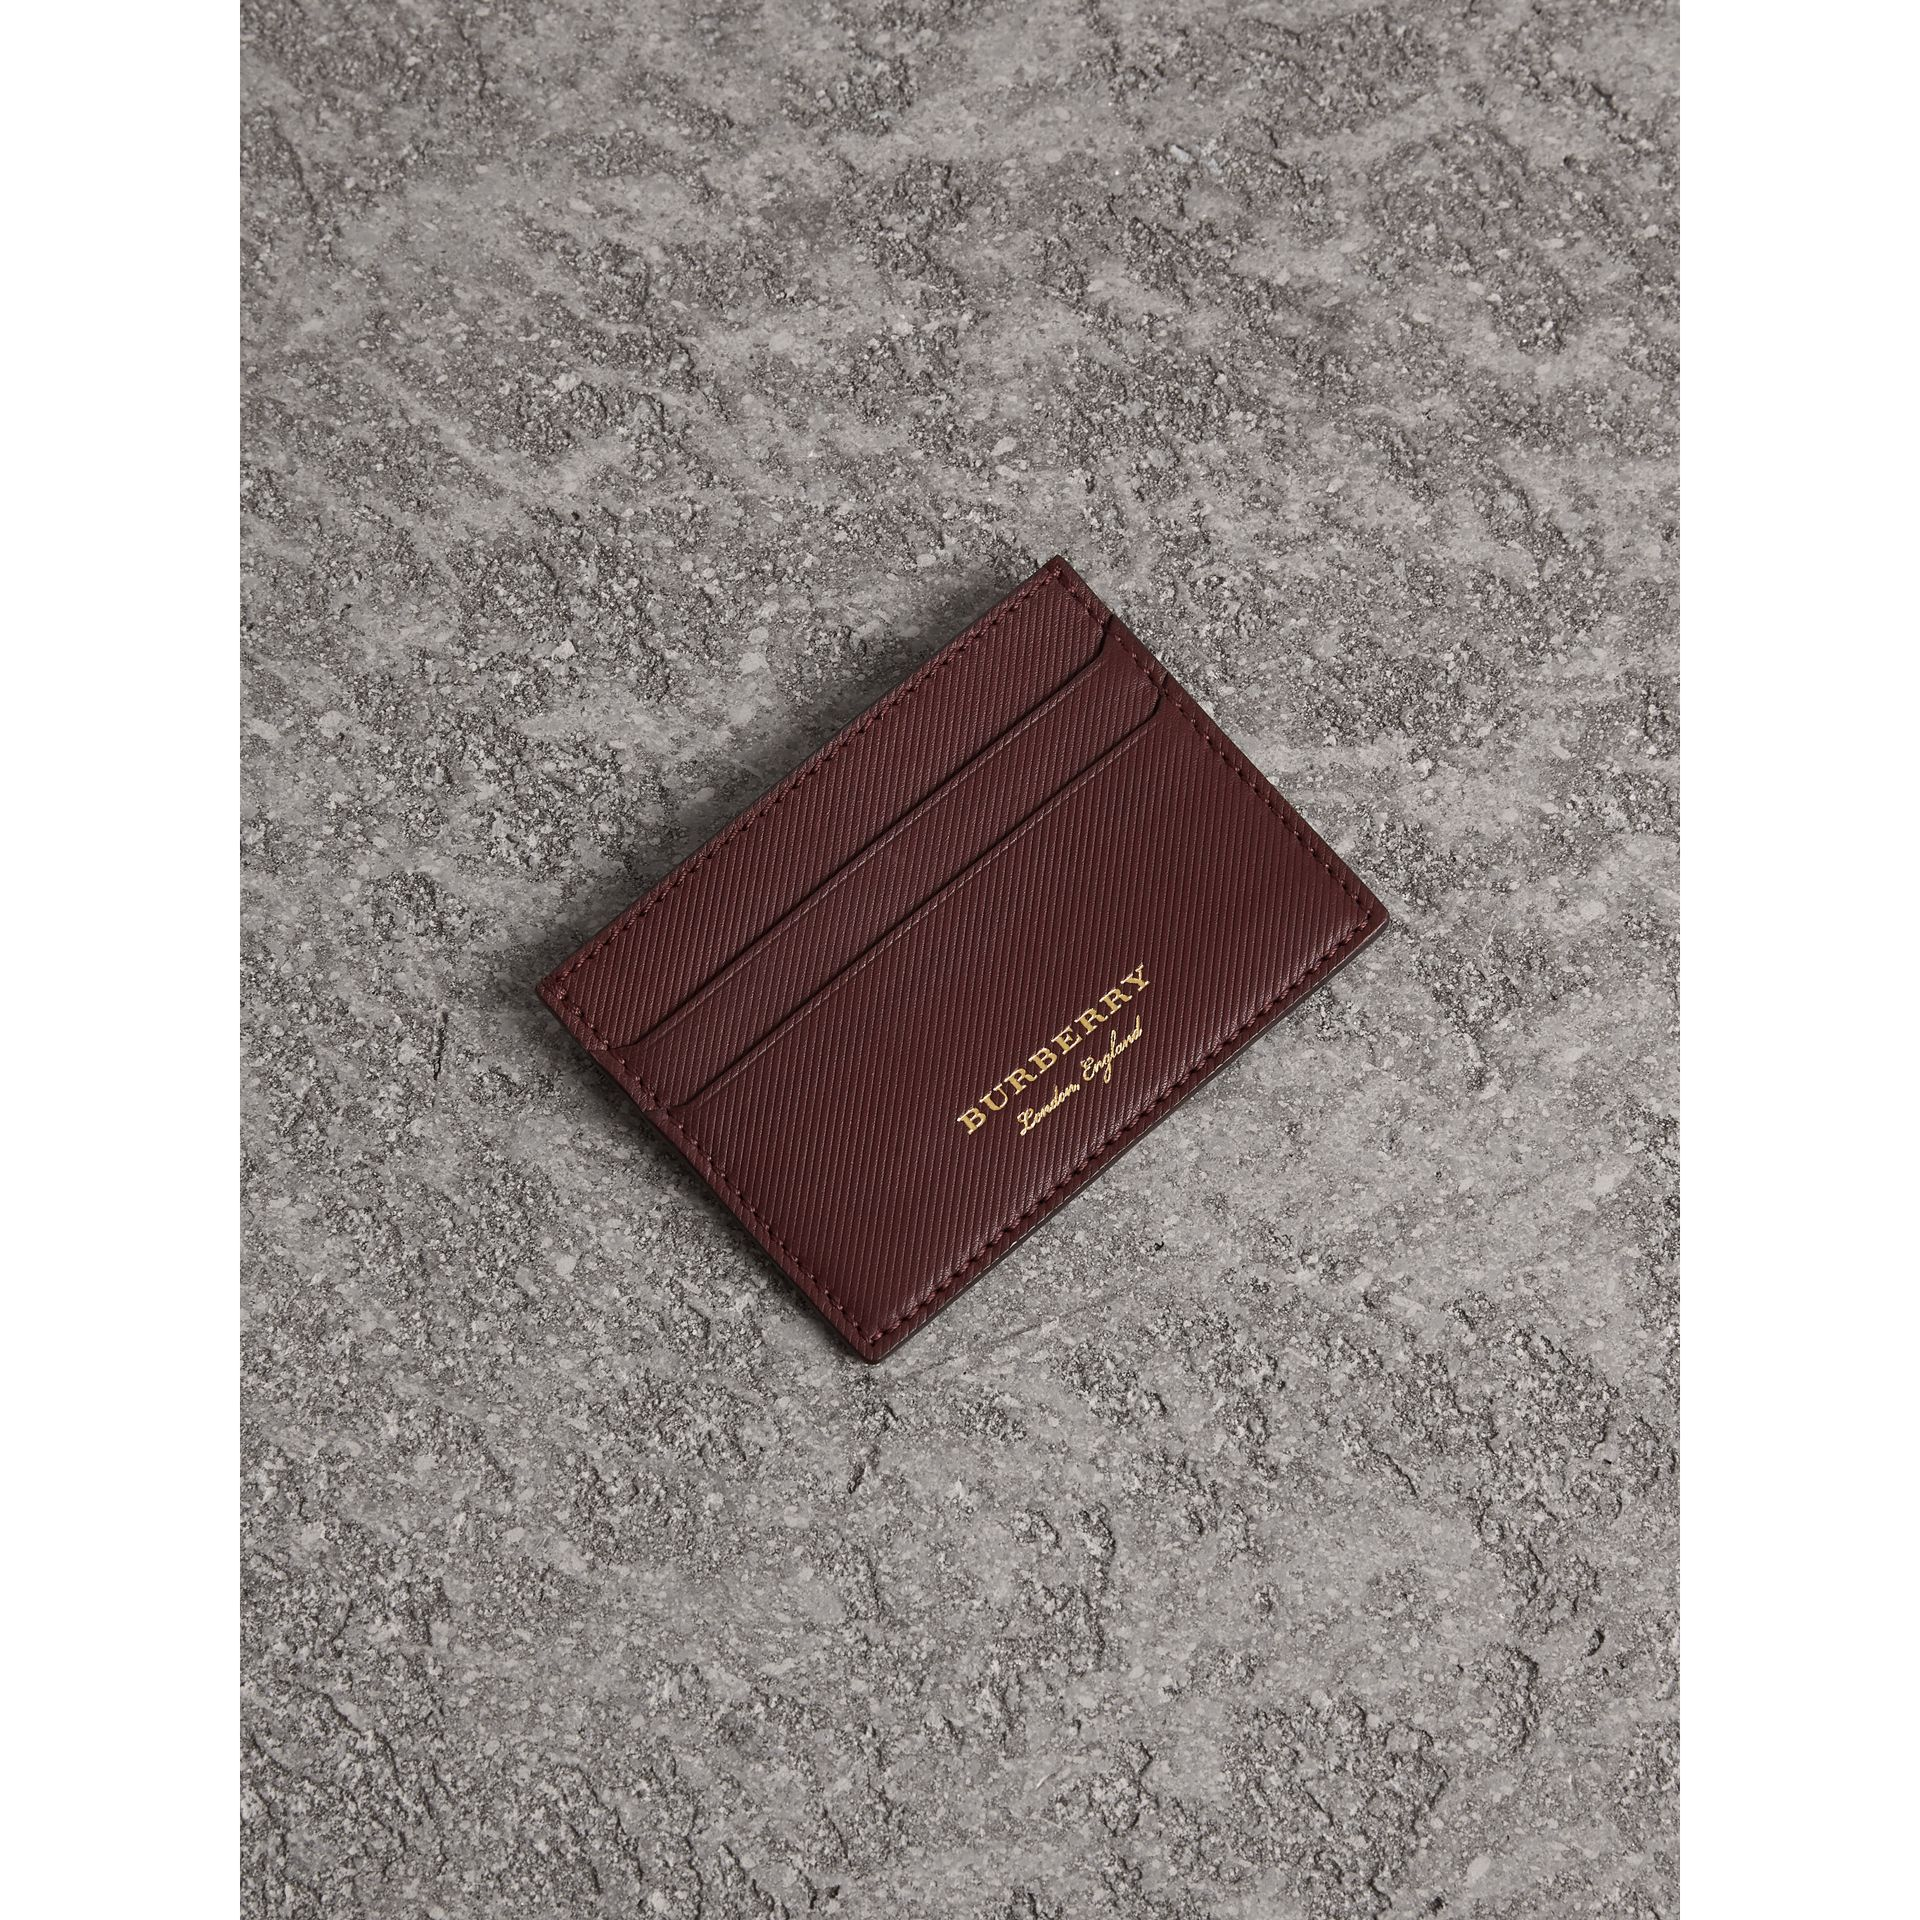 Trench Leather Card Case in Wine - Men | Burberry United States - gallery image 1